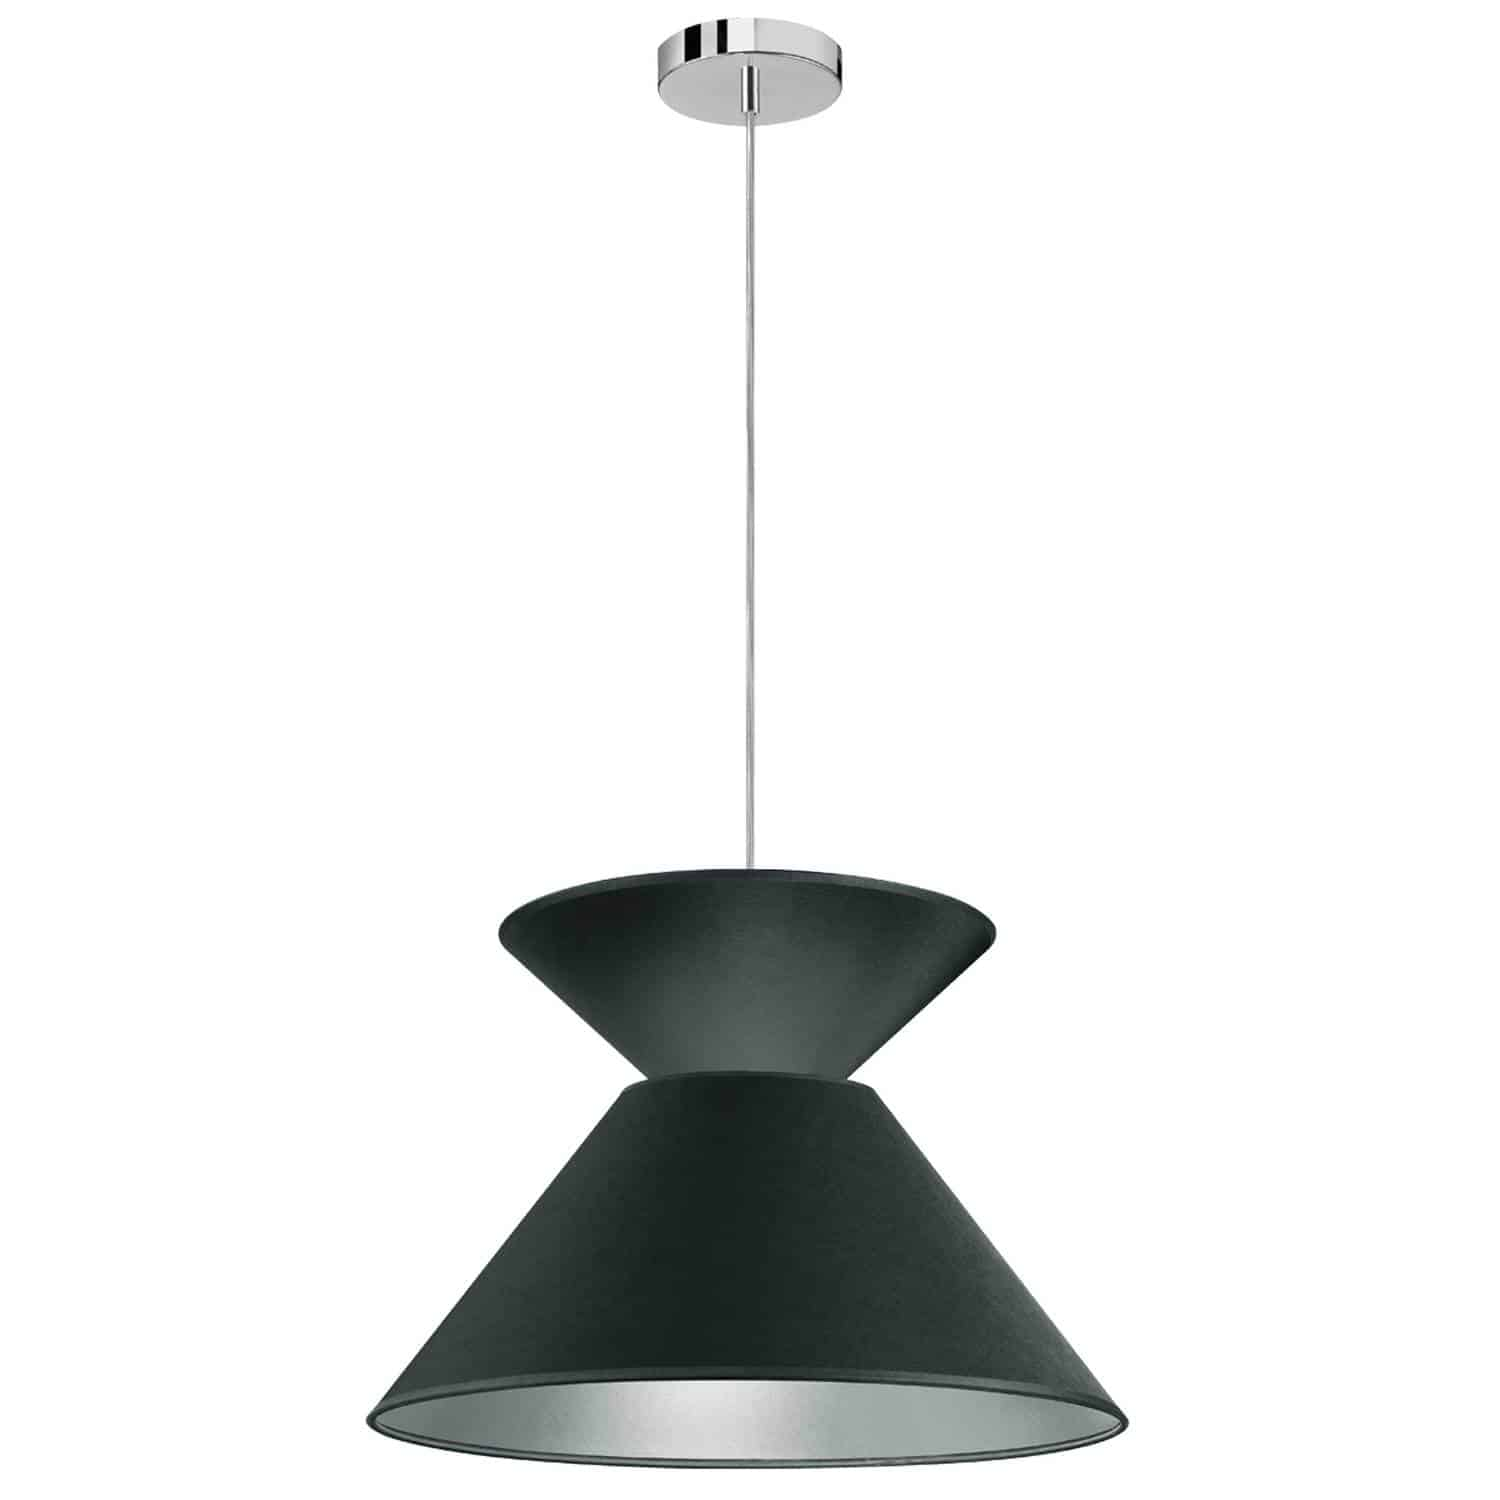 1 Light Patricia Pendant, Polished Chrome with Black/Silver Shade